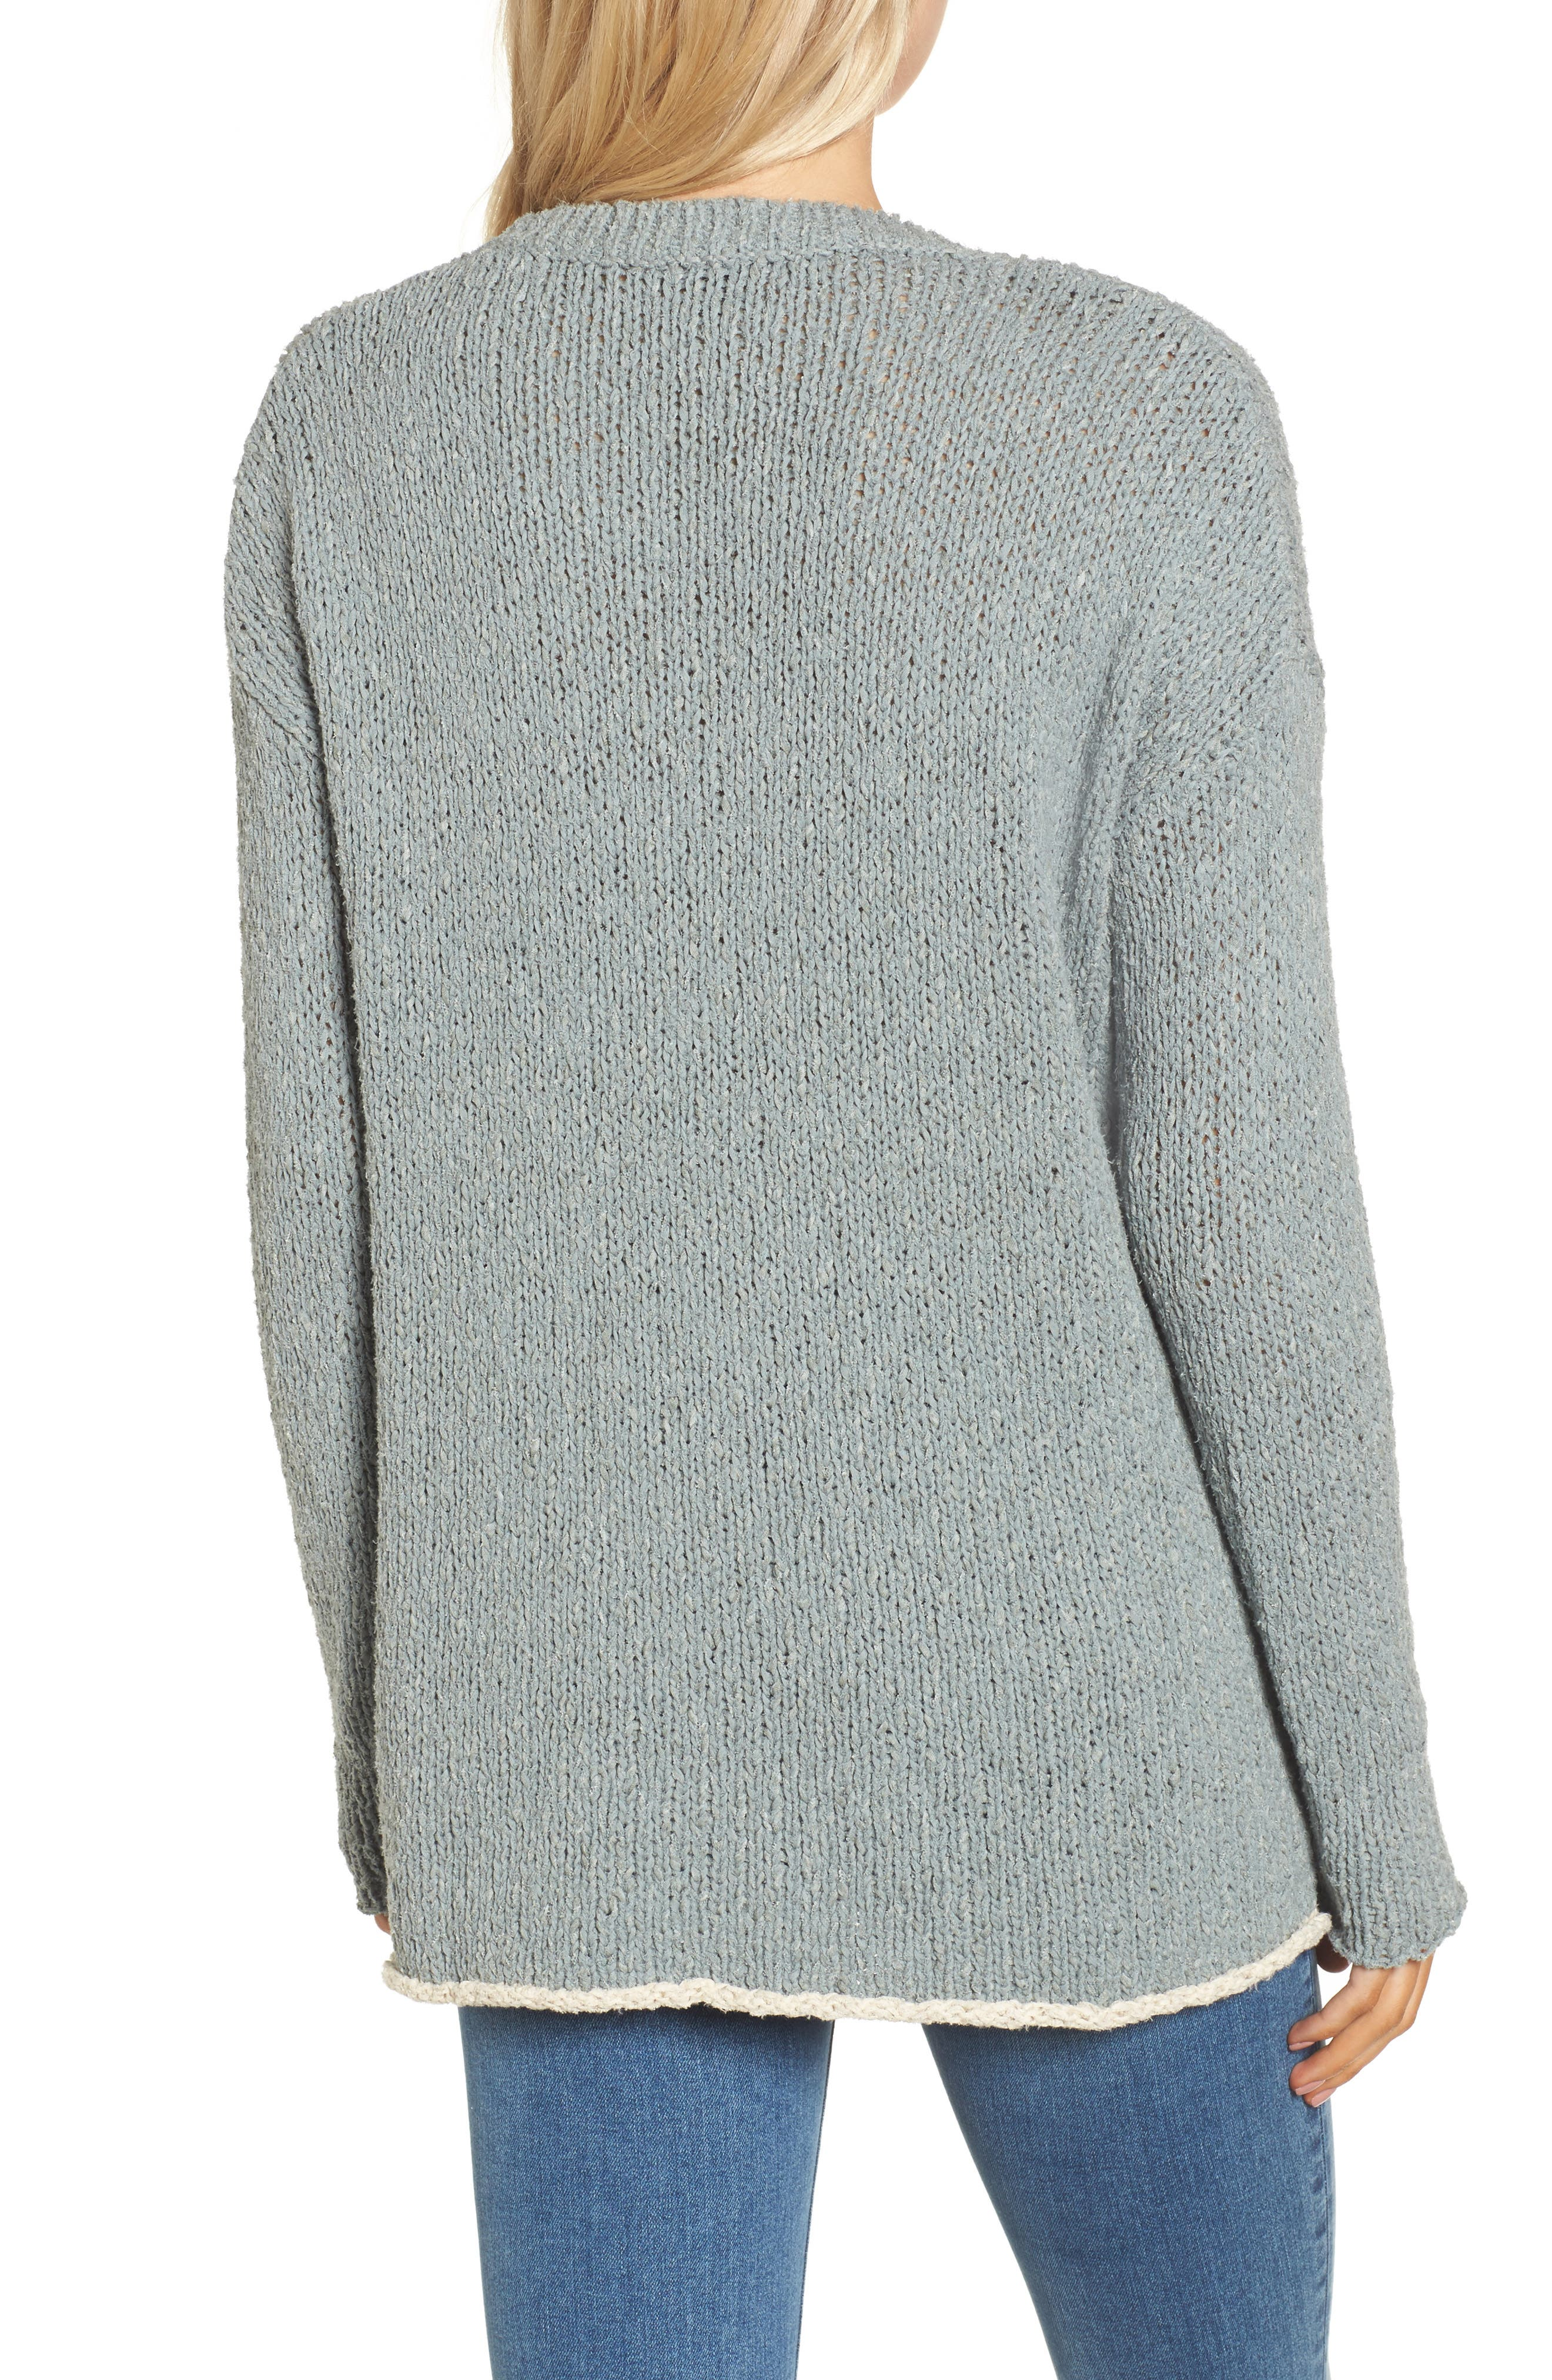 Alternate Image 2  - James Perse Oversize Sweater